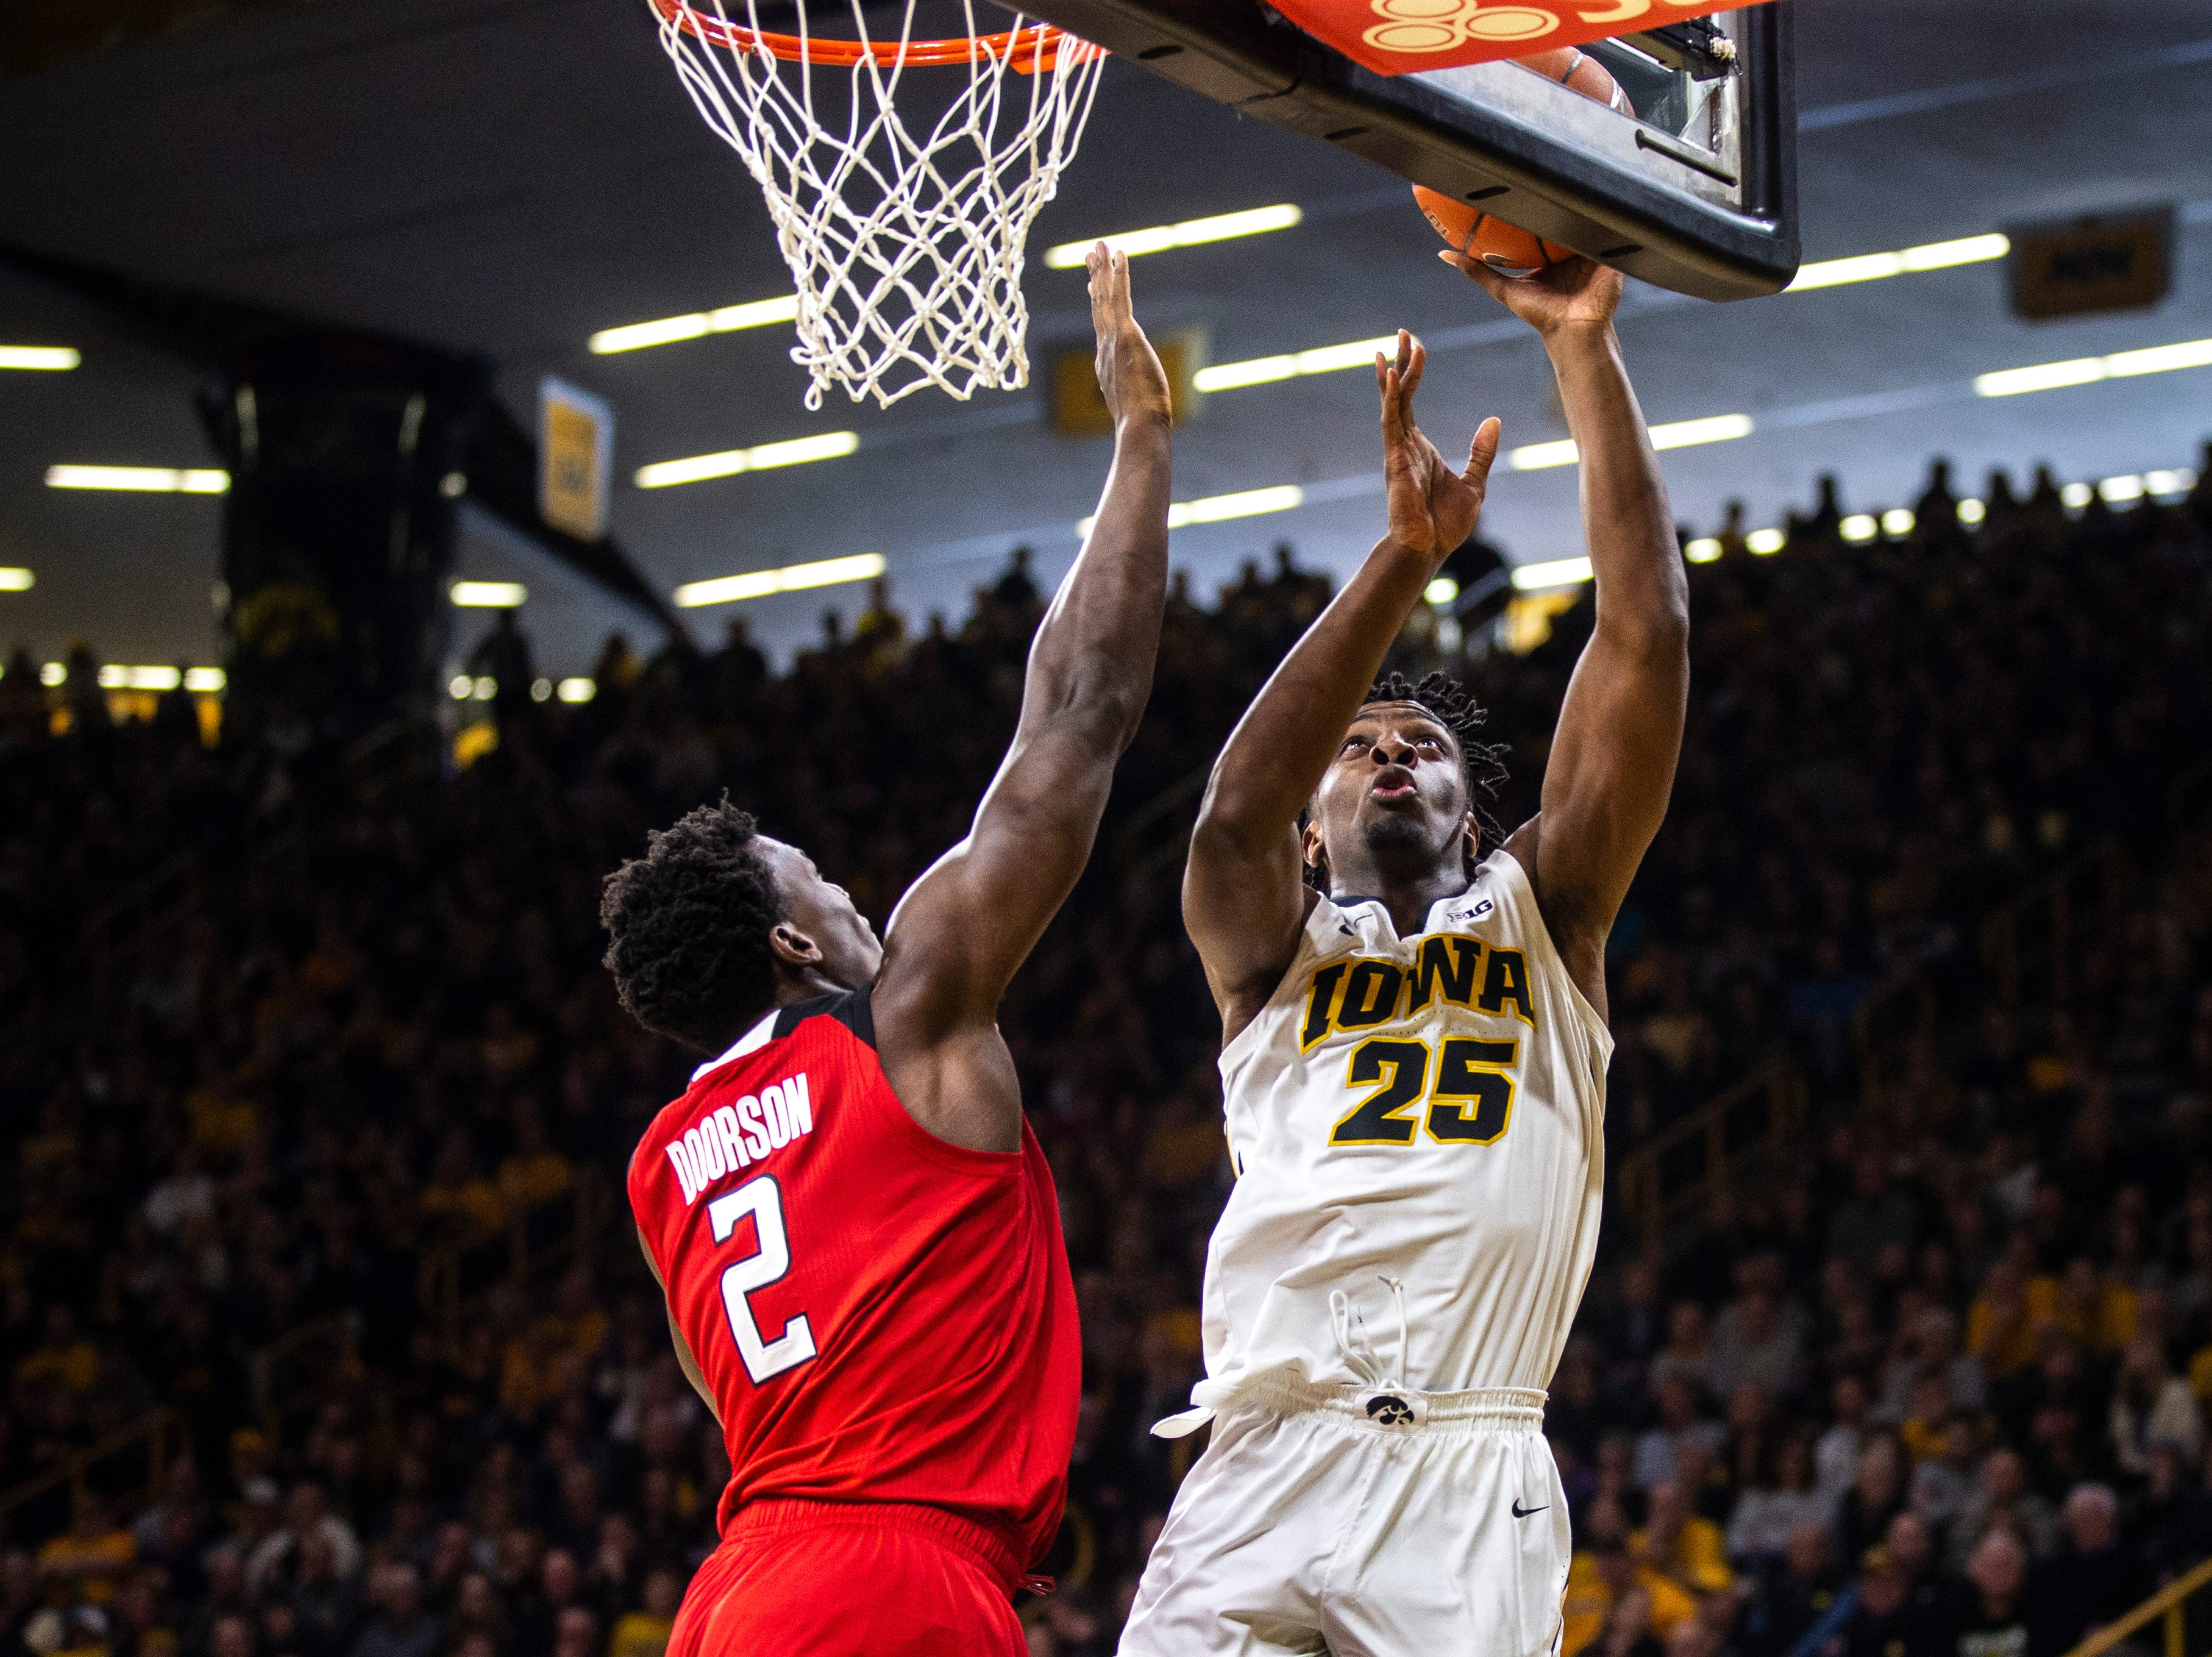 Iowa forward Tyler Cook (25) shoots a basket while Rutgers center Shaquille Doorson (2) defends during a NCAA Big Ten Conference men's basketball game on Saturday, March 2, 2019, at Carver-Hawkeye Arena in Iowa City, Iowa.